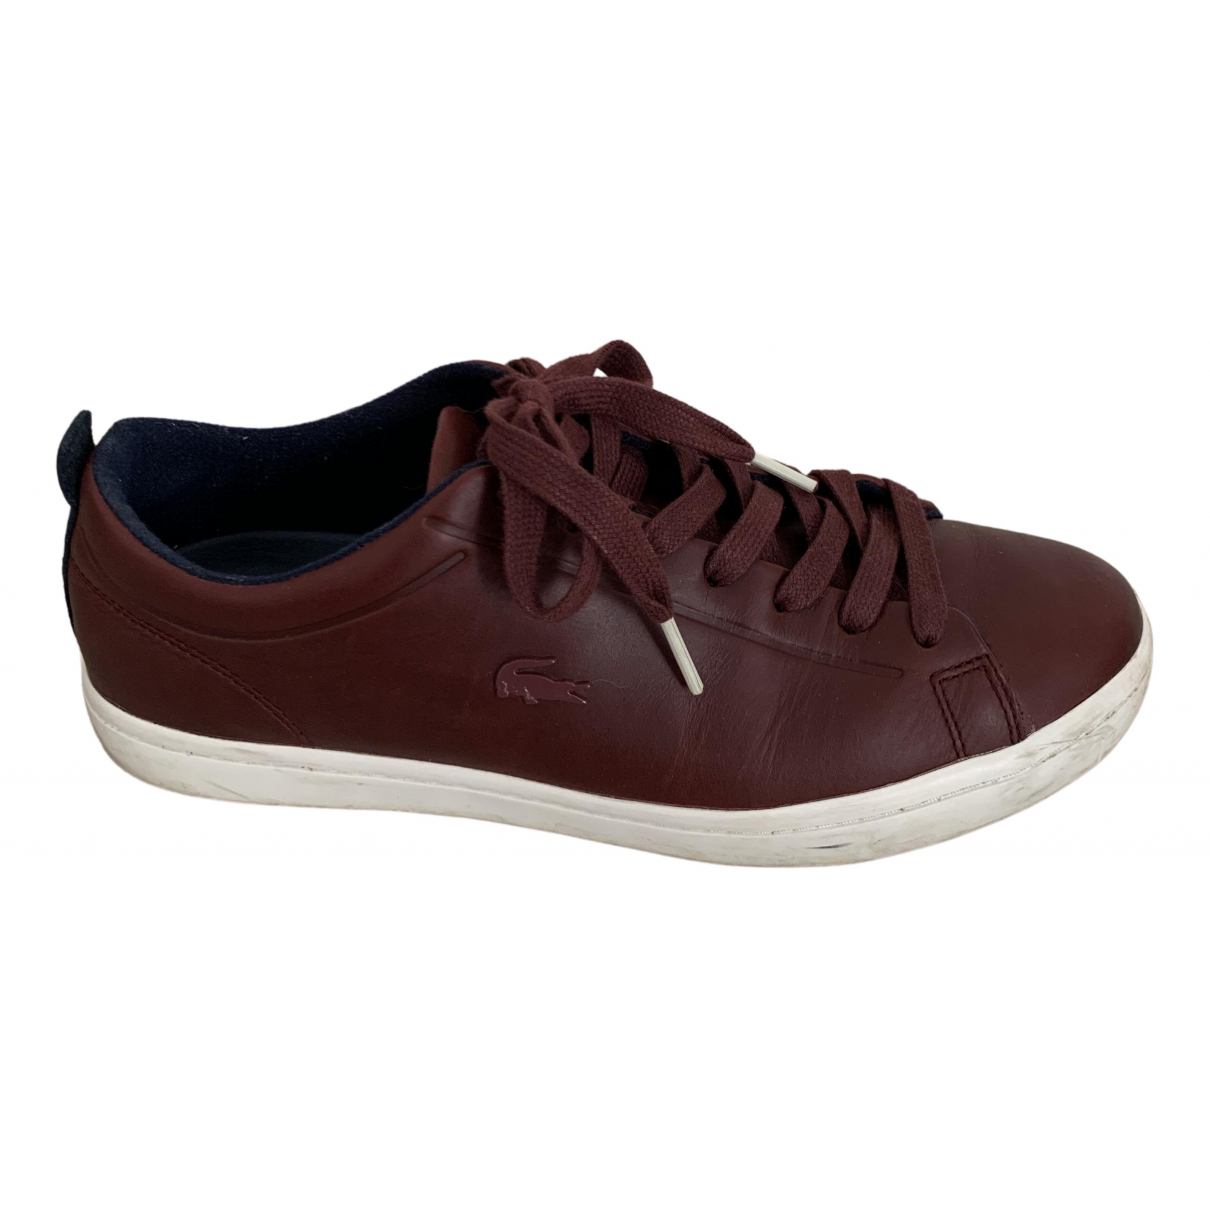 Lacoste \N Burgundy Leather Trainers for Women 41 EU